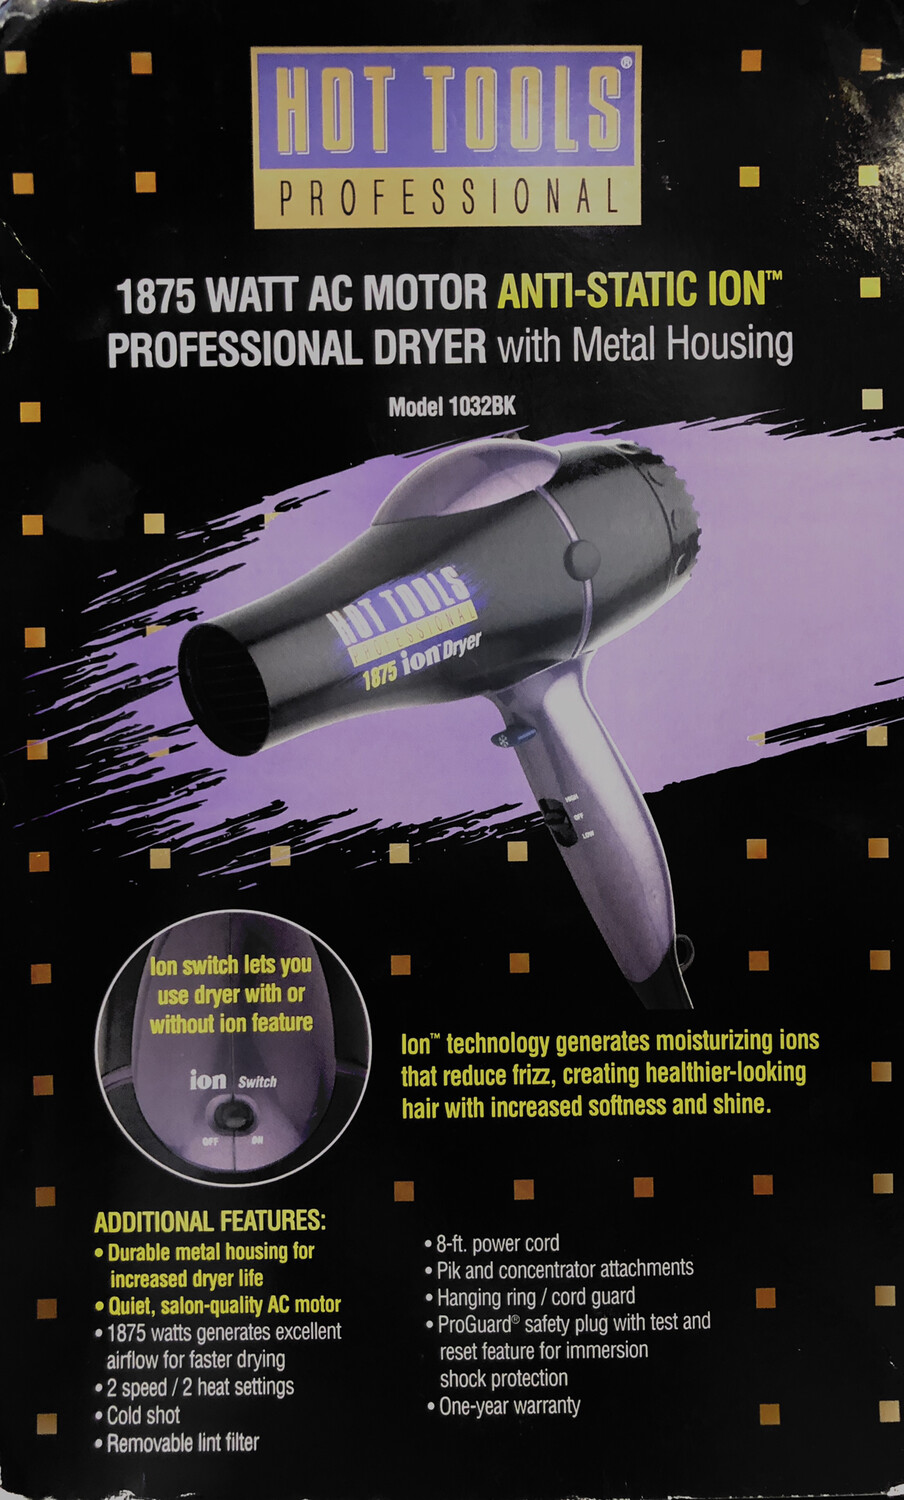 Hot Tools Professional Professional Dryer